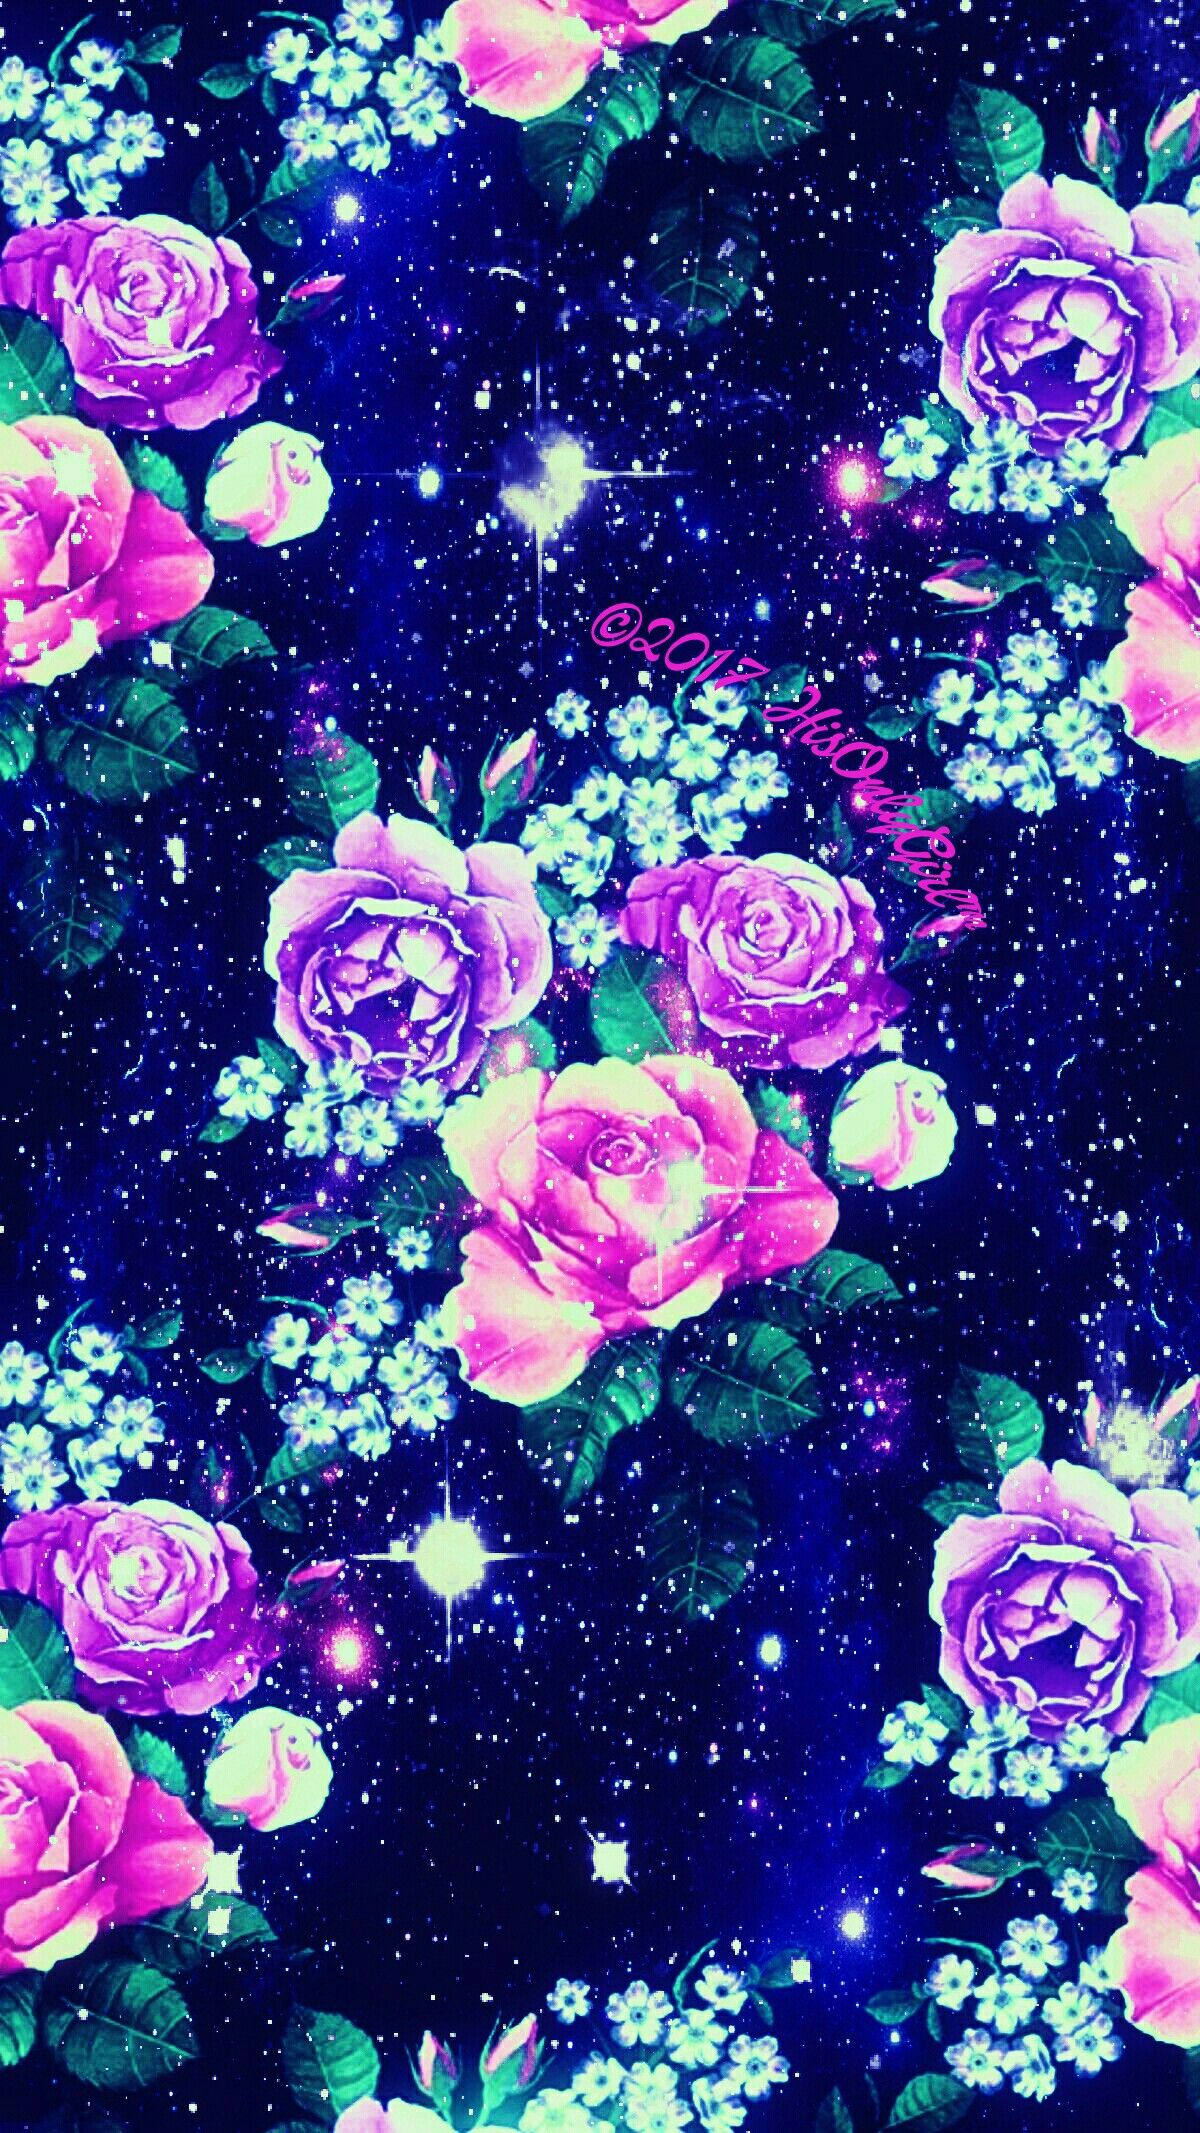 Sweet flowers galaxy wallpaper I created for the app